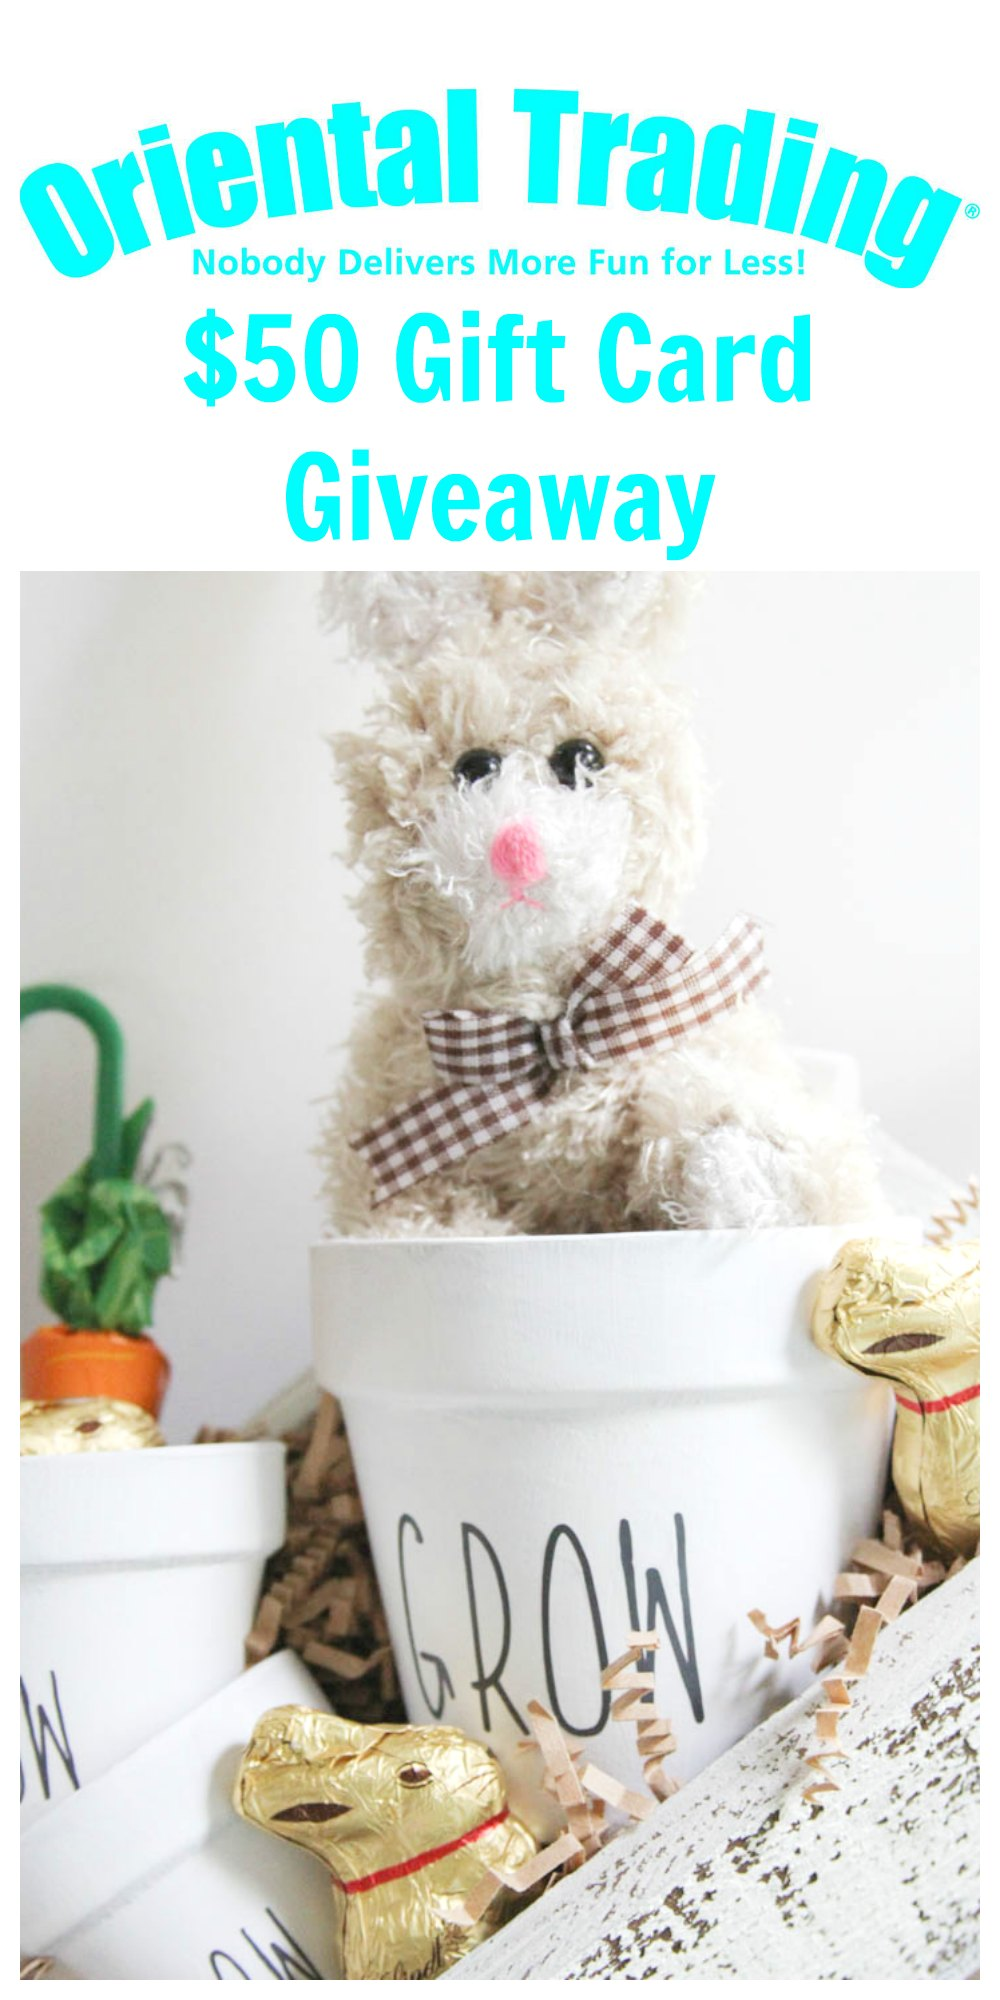 Everyday Party Magazine Oriental Trading Gift Card Giveaway